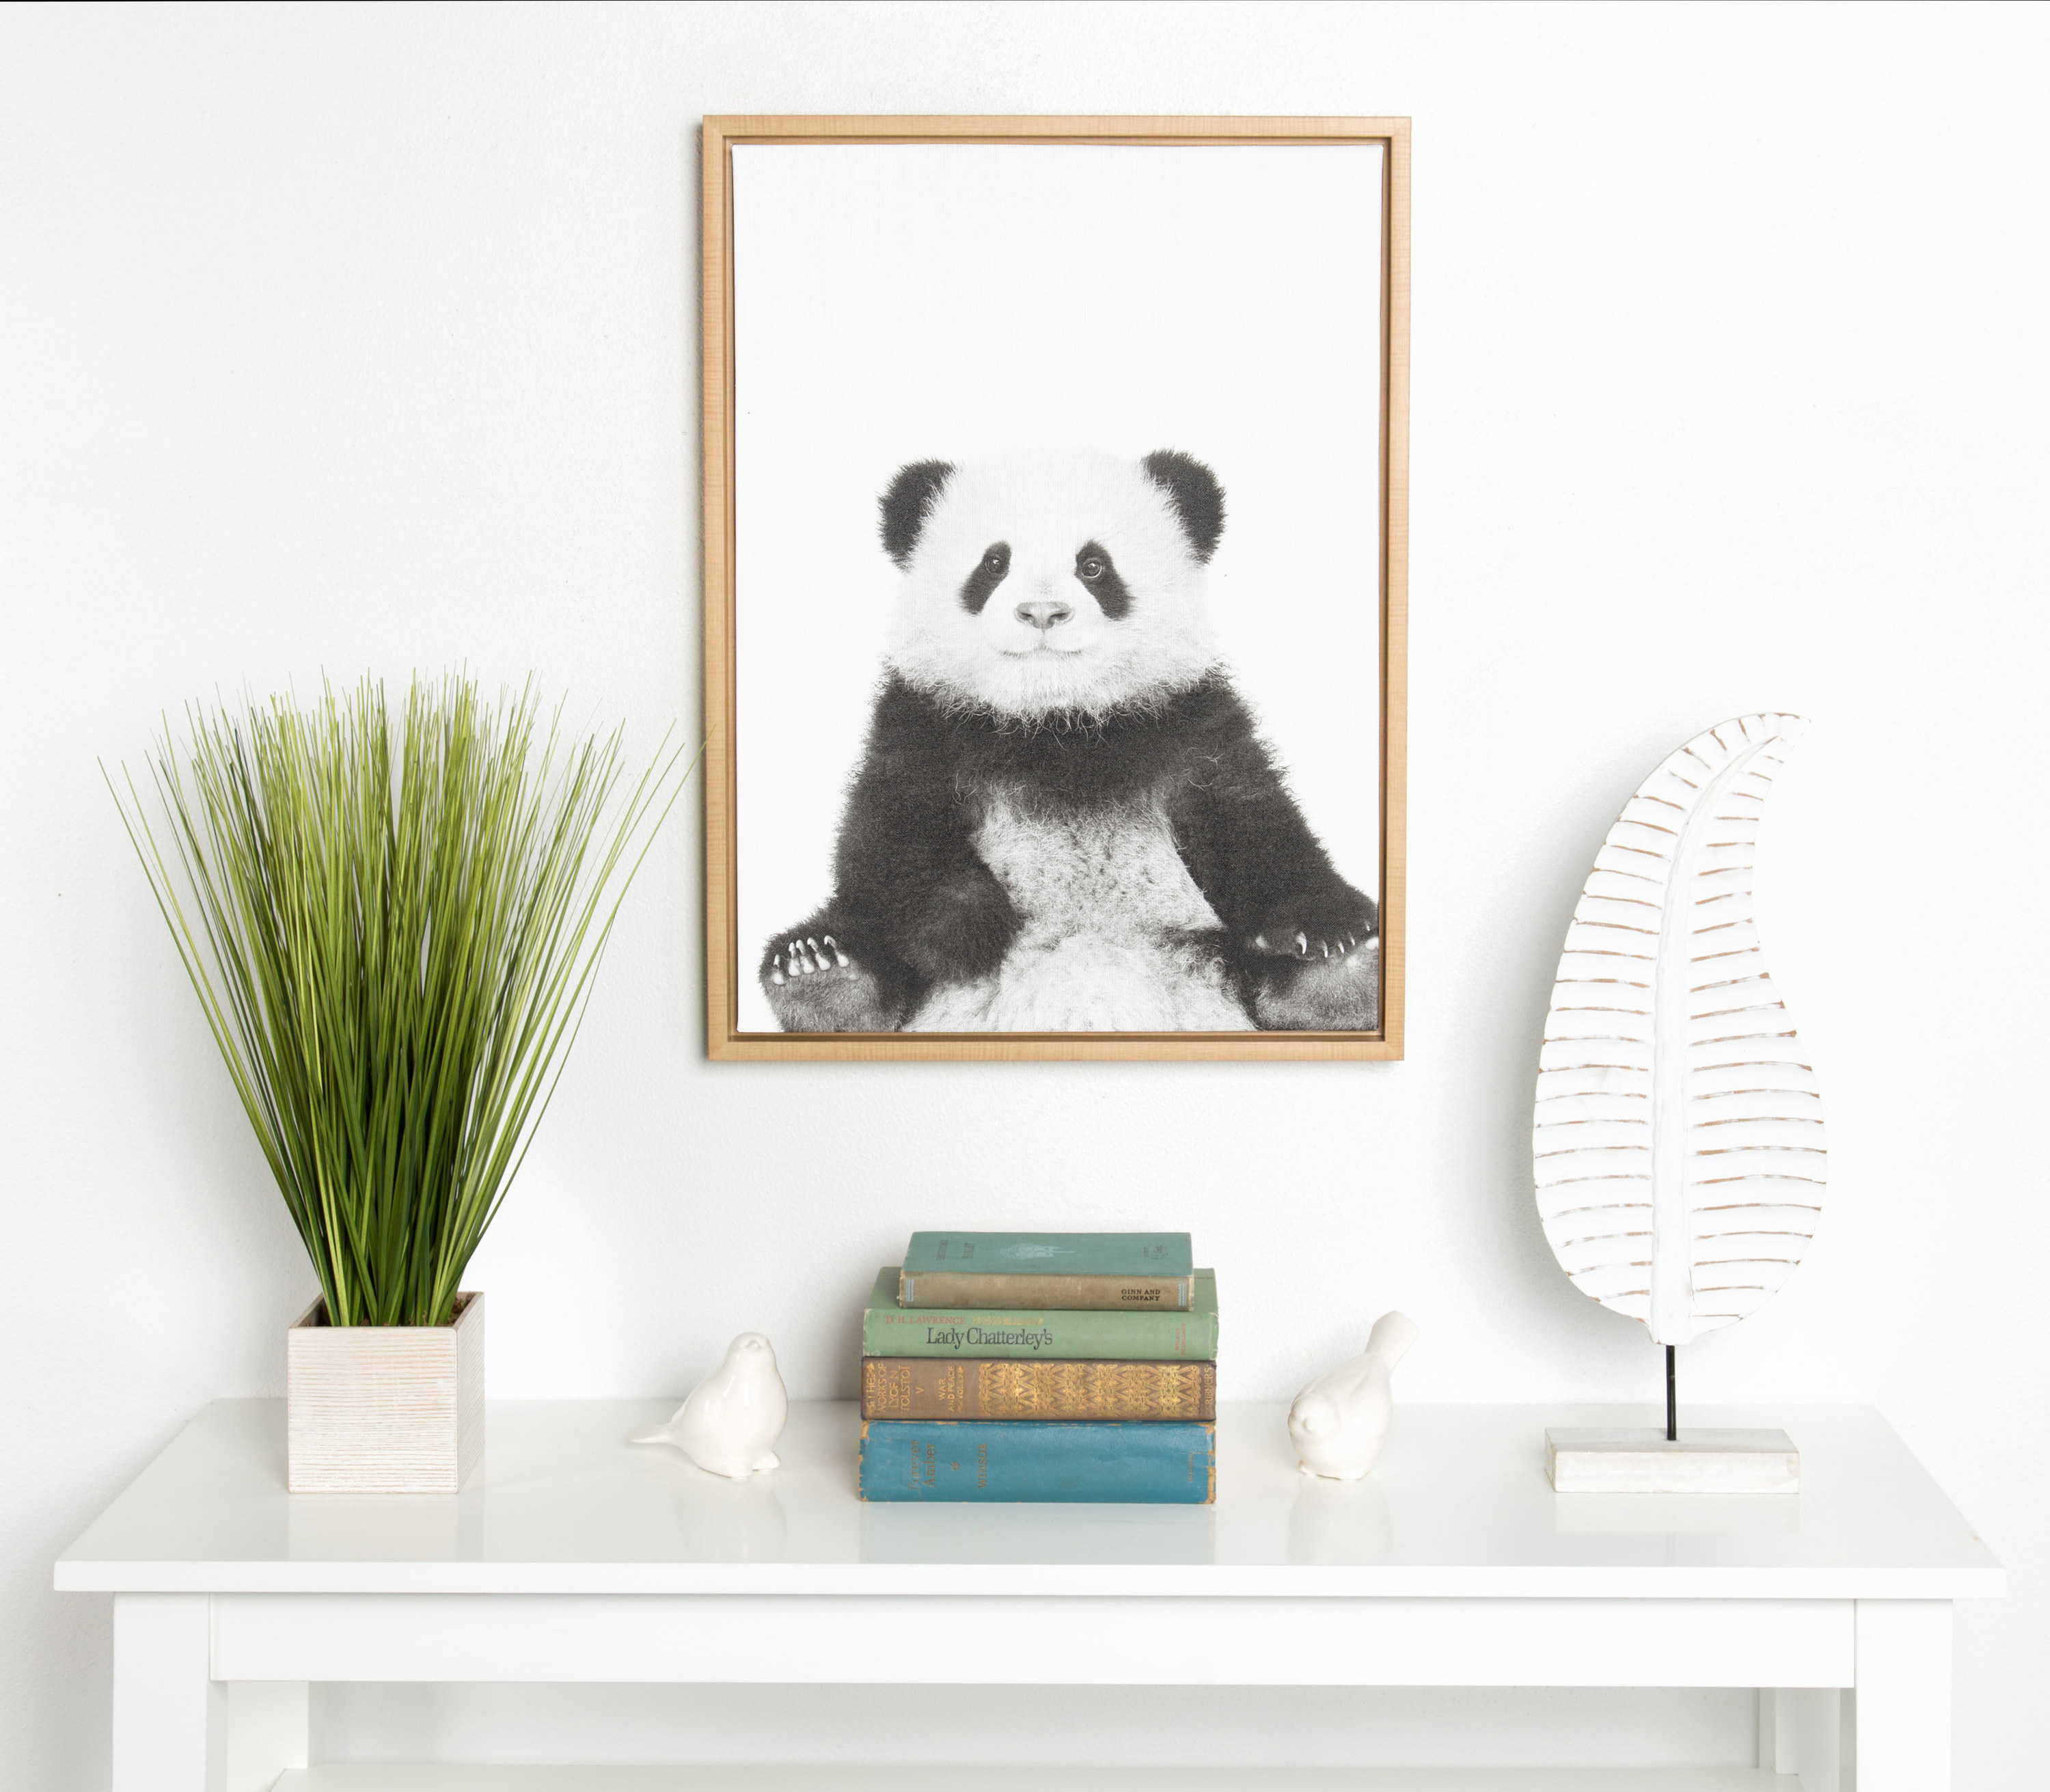 The framed panda portrait